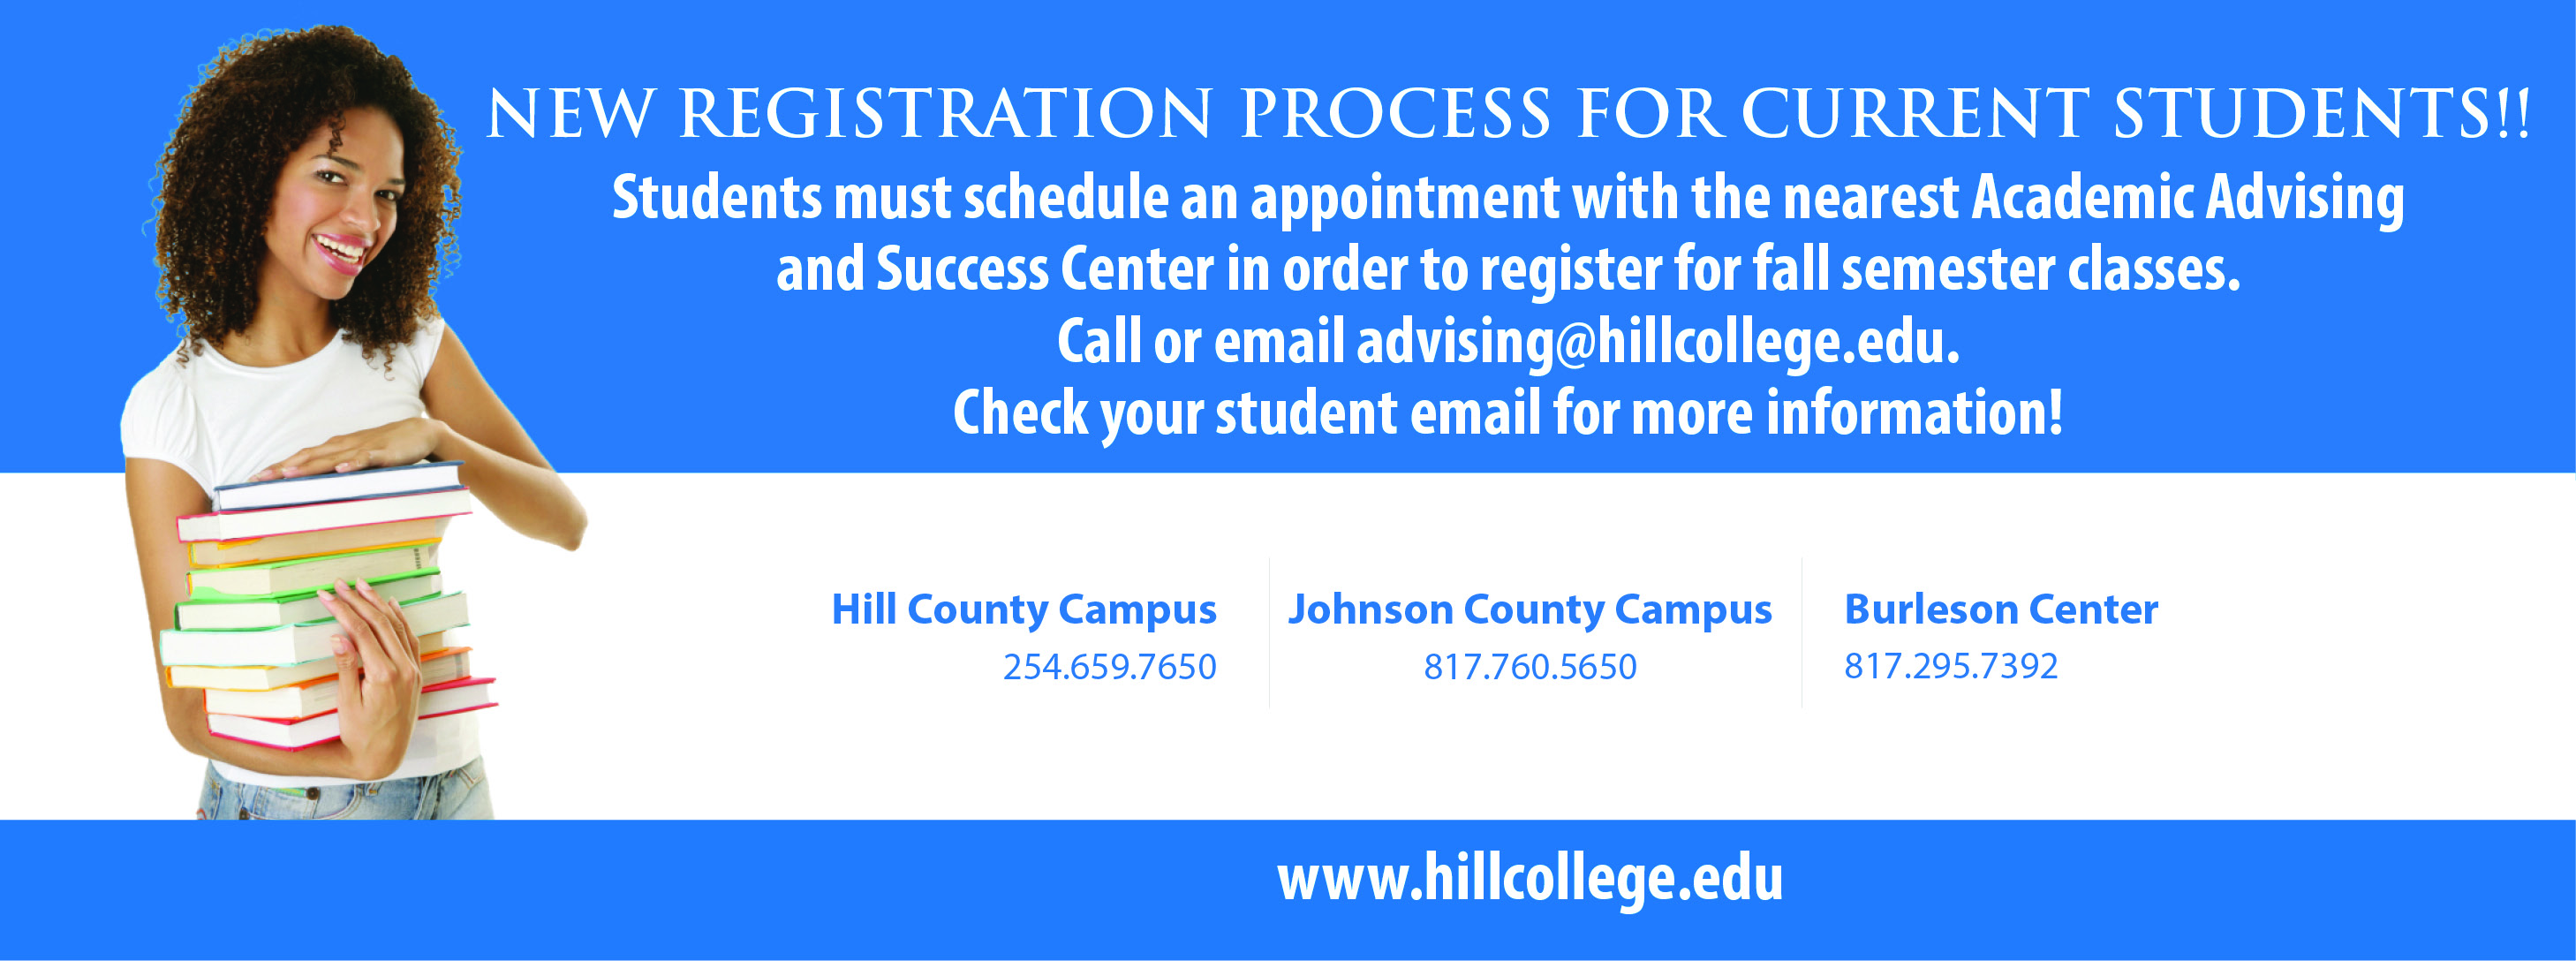 New Registration process